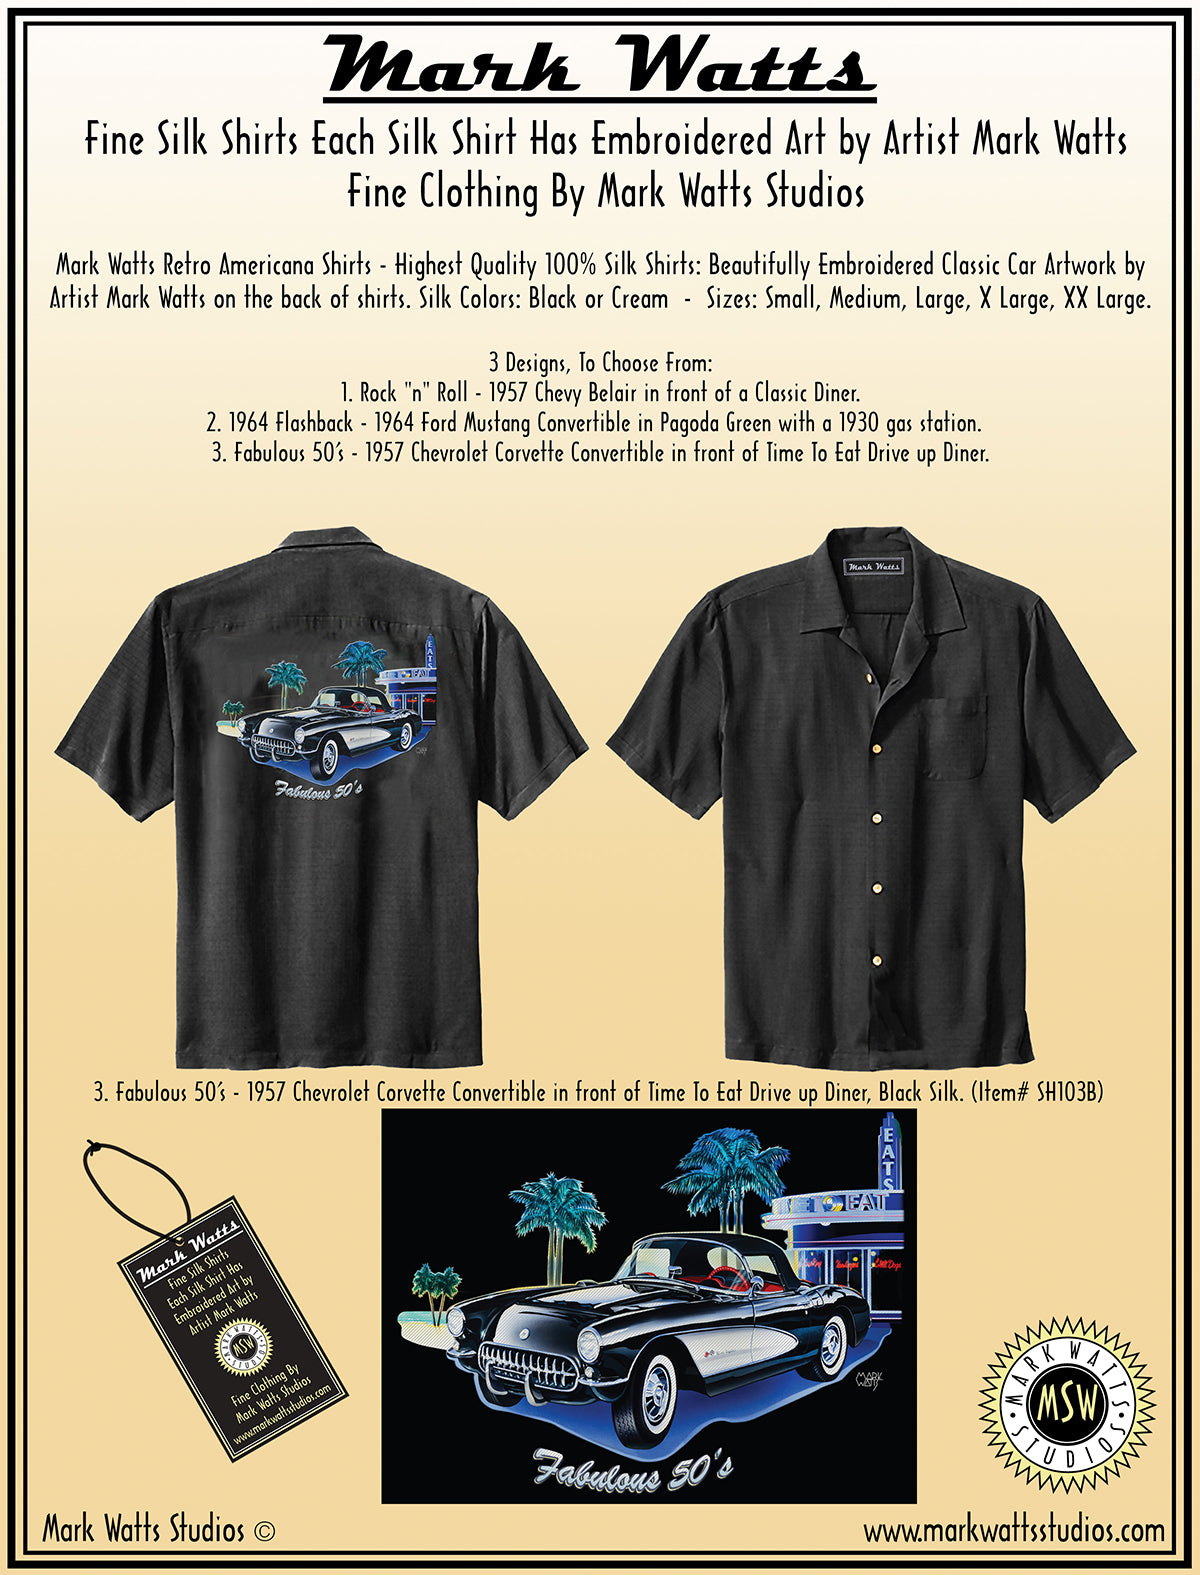 Mark Watts Retro Americana Shirts Highest Quality 100 Silk 1957 Chevy Bel Air Convertible Colors Close Up Embroidered Images Below